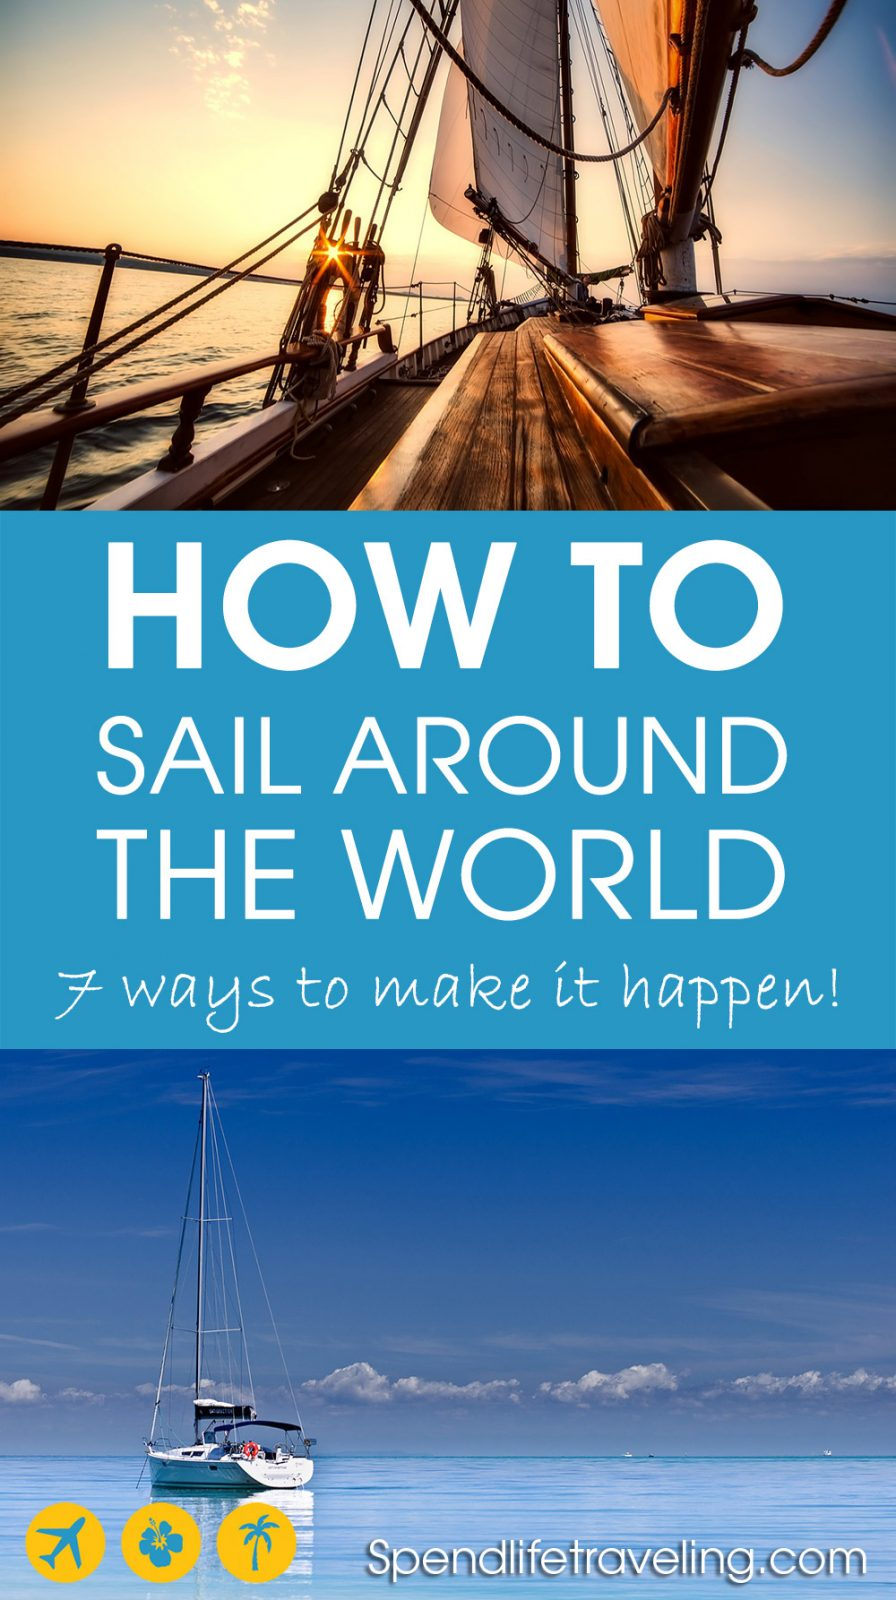 Have you fantasized about sailing around the world? It might be a lot easier to make this dream a reality than you think! These are 7 ways you could make it happen: sail around the world in a way that works for you!